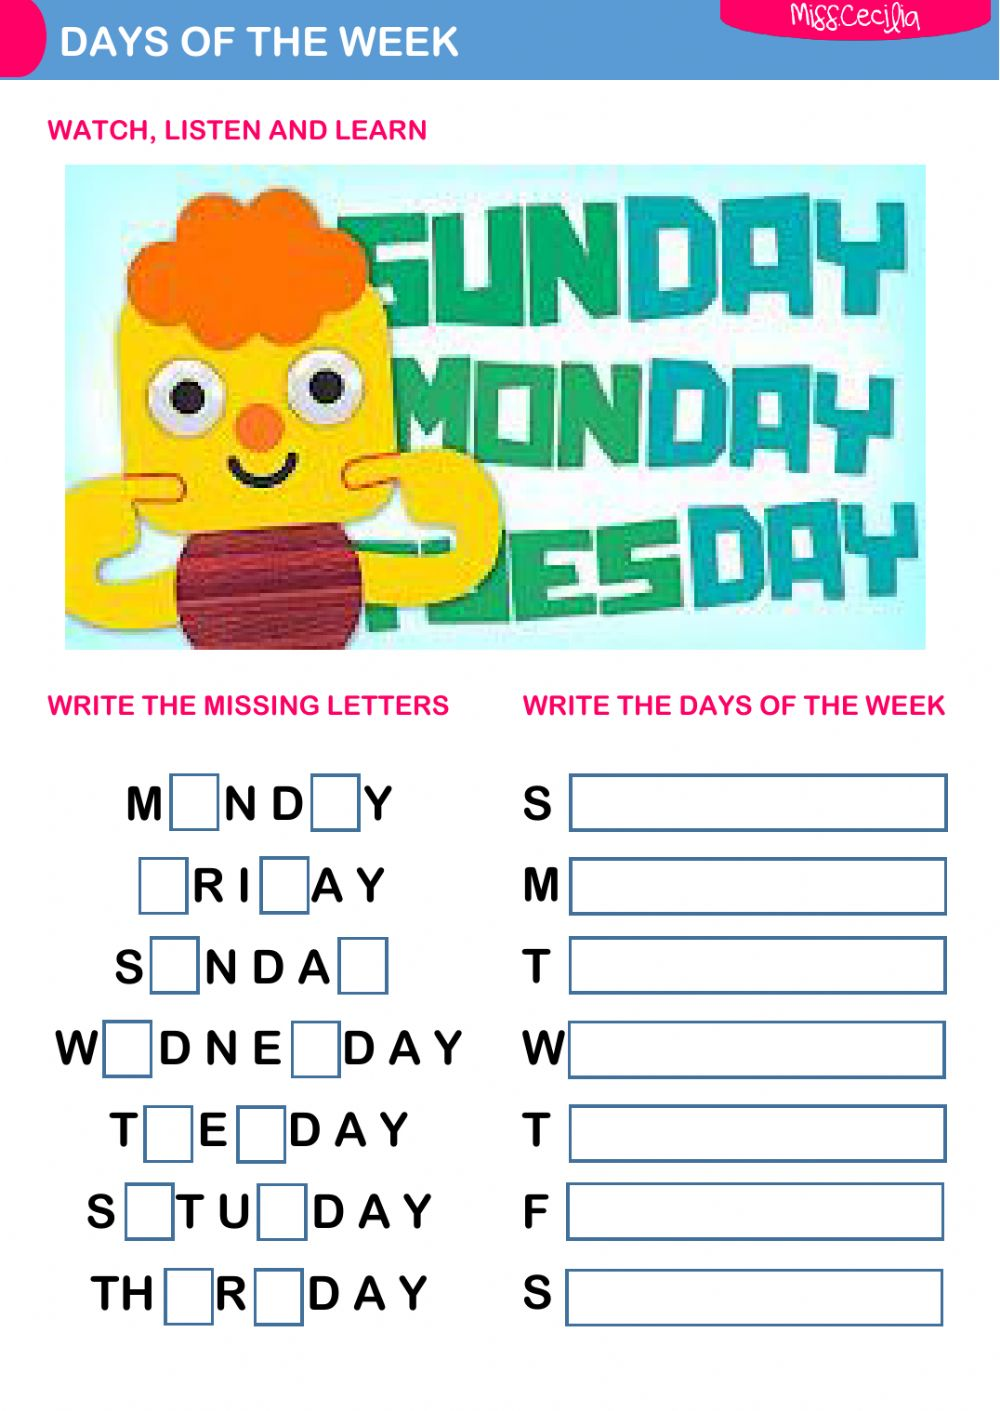 DAYS OF THE WEEK - Interactive worksheet